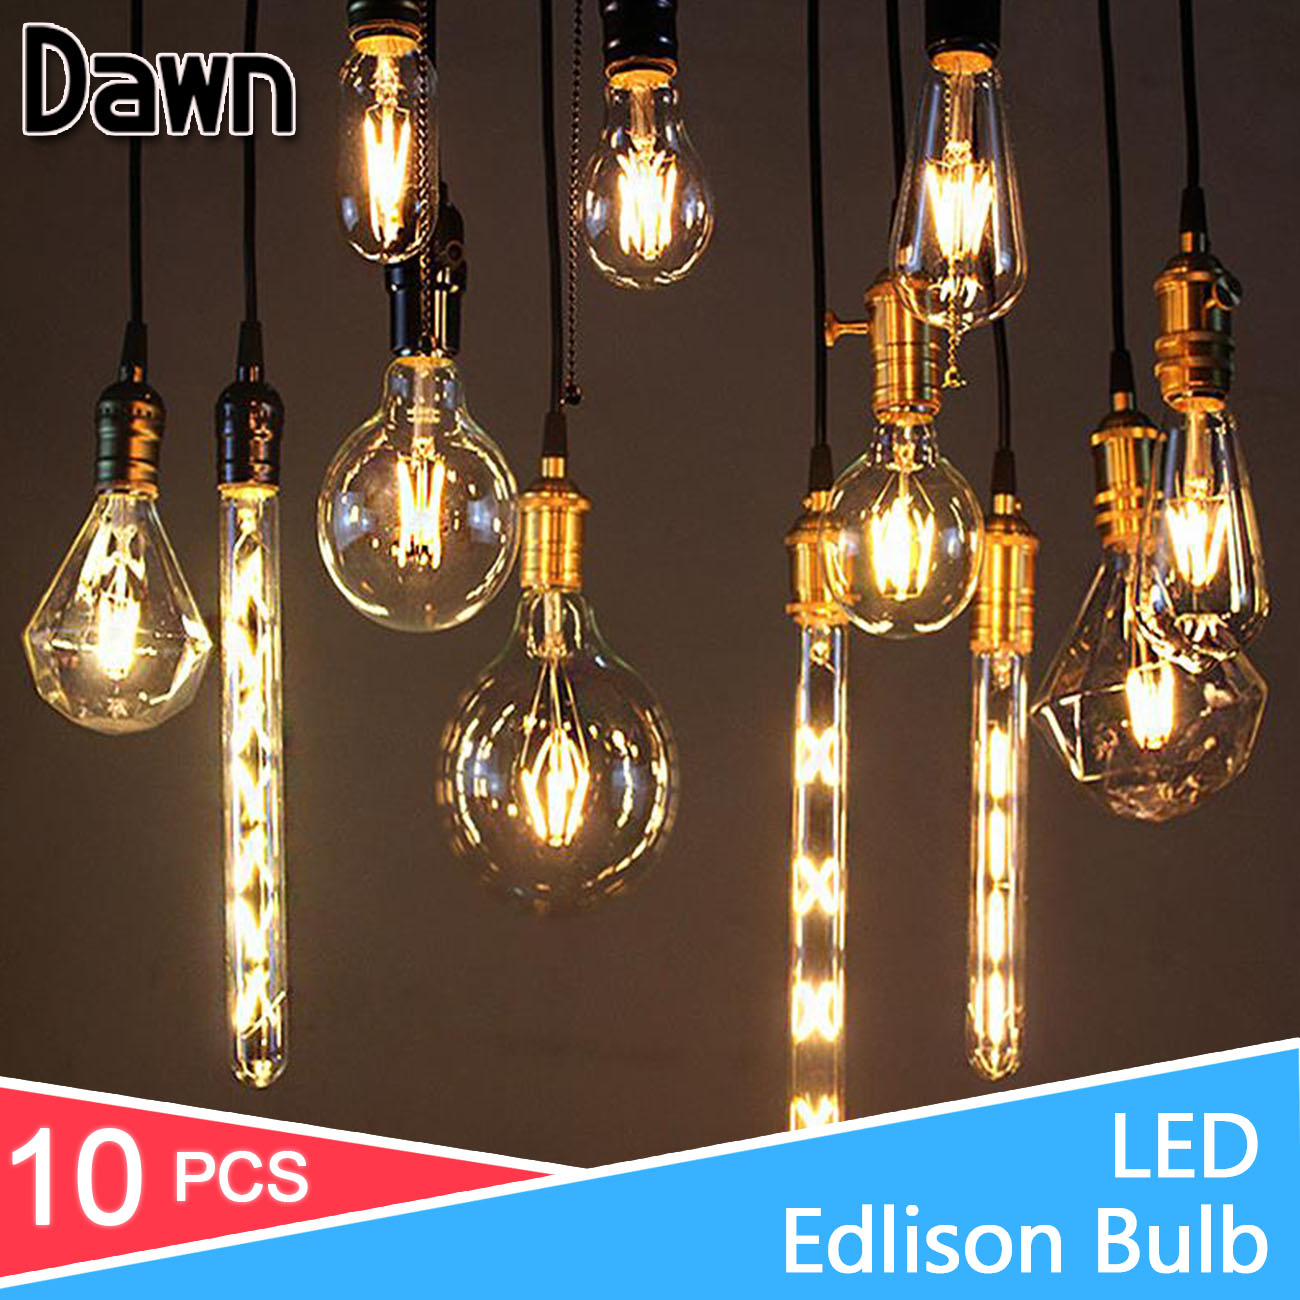 10pcs Antique LED Lamp 220V Filament Light E27 E14 LED Bulb 2W 4W 6W 8W Vintage Edison Bulb Glass Led Specialty Decorative Light